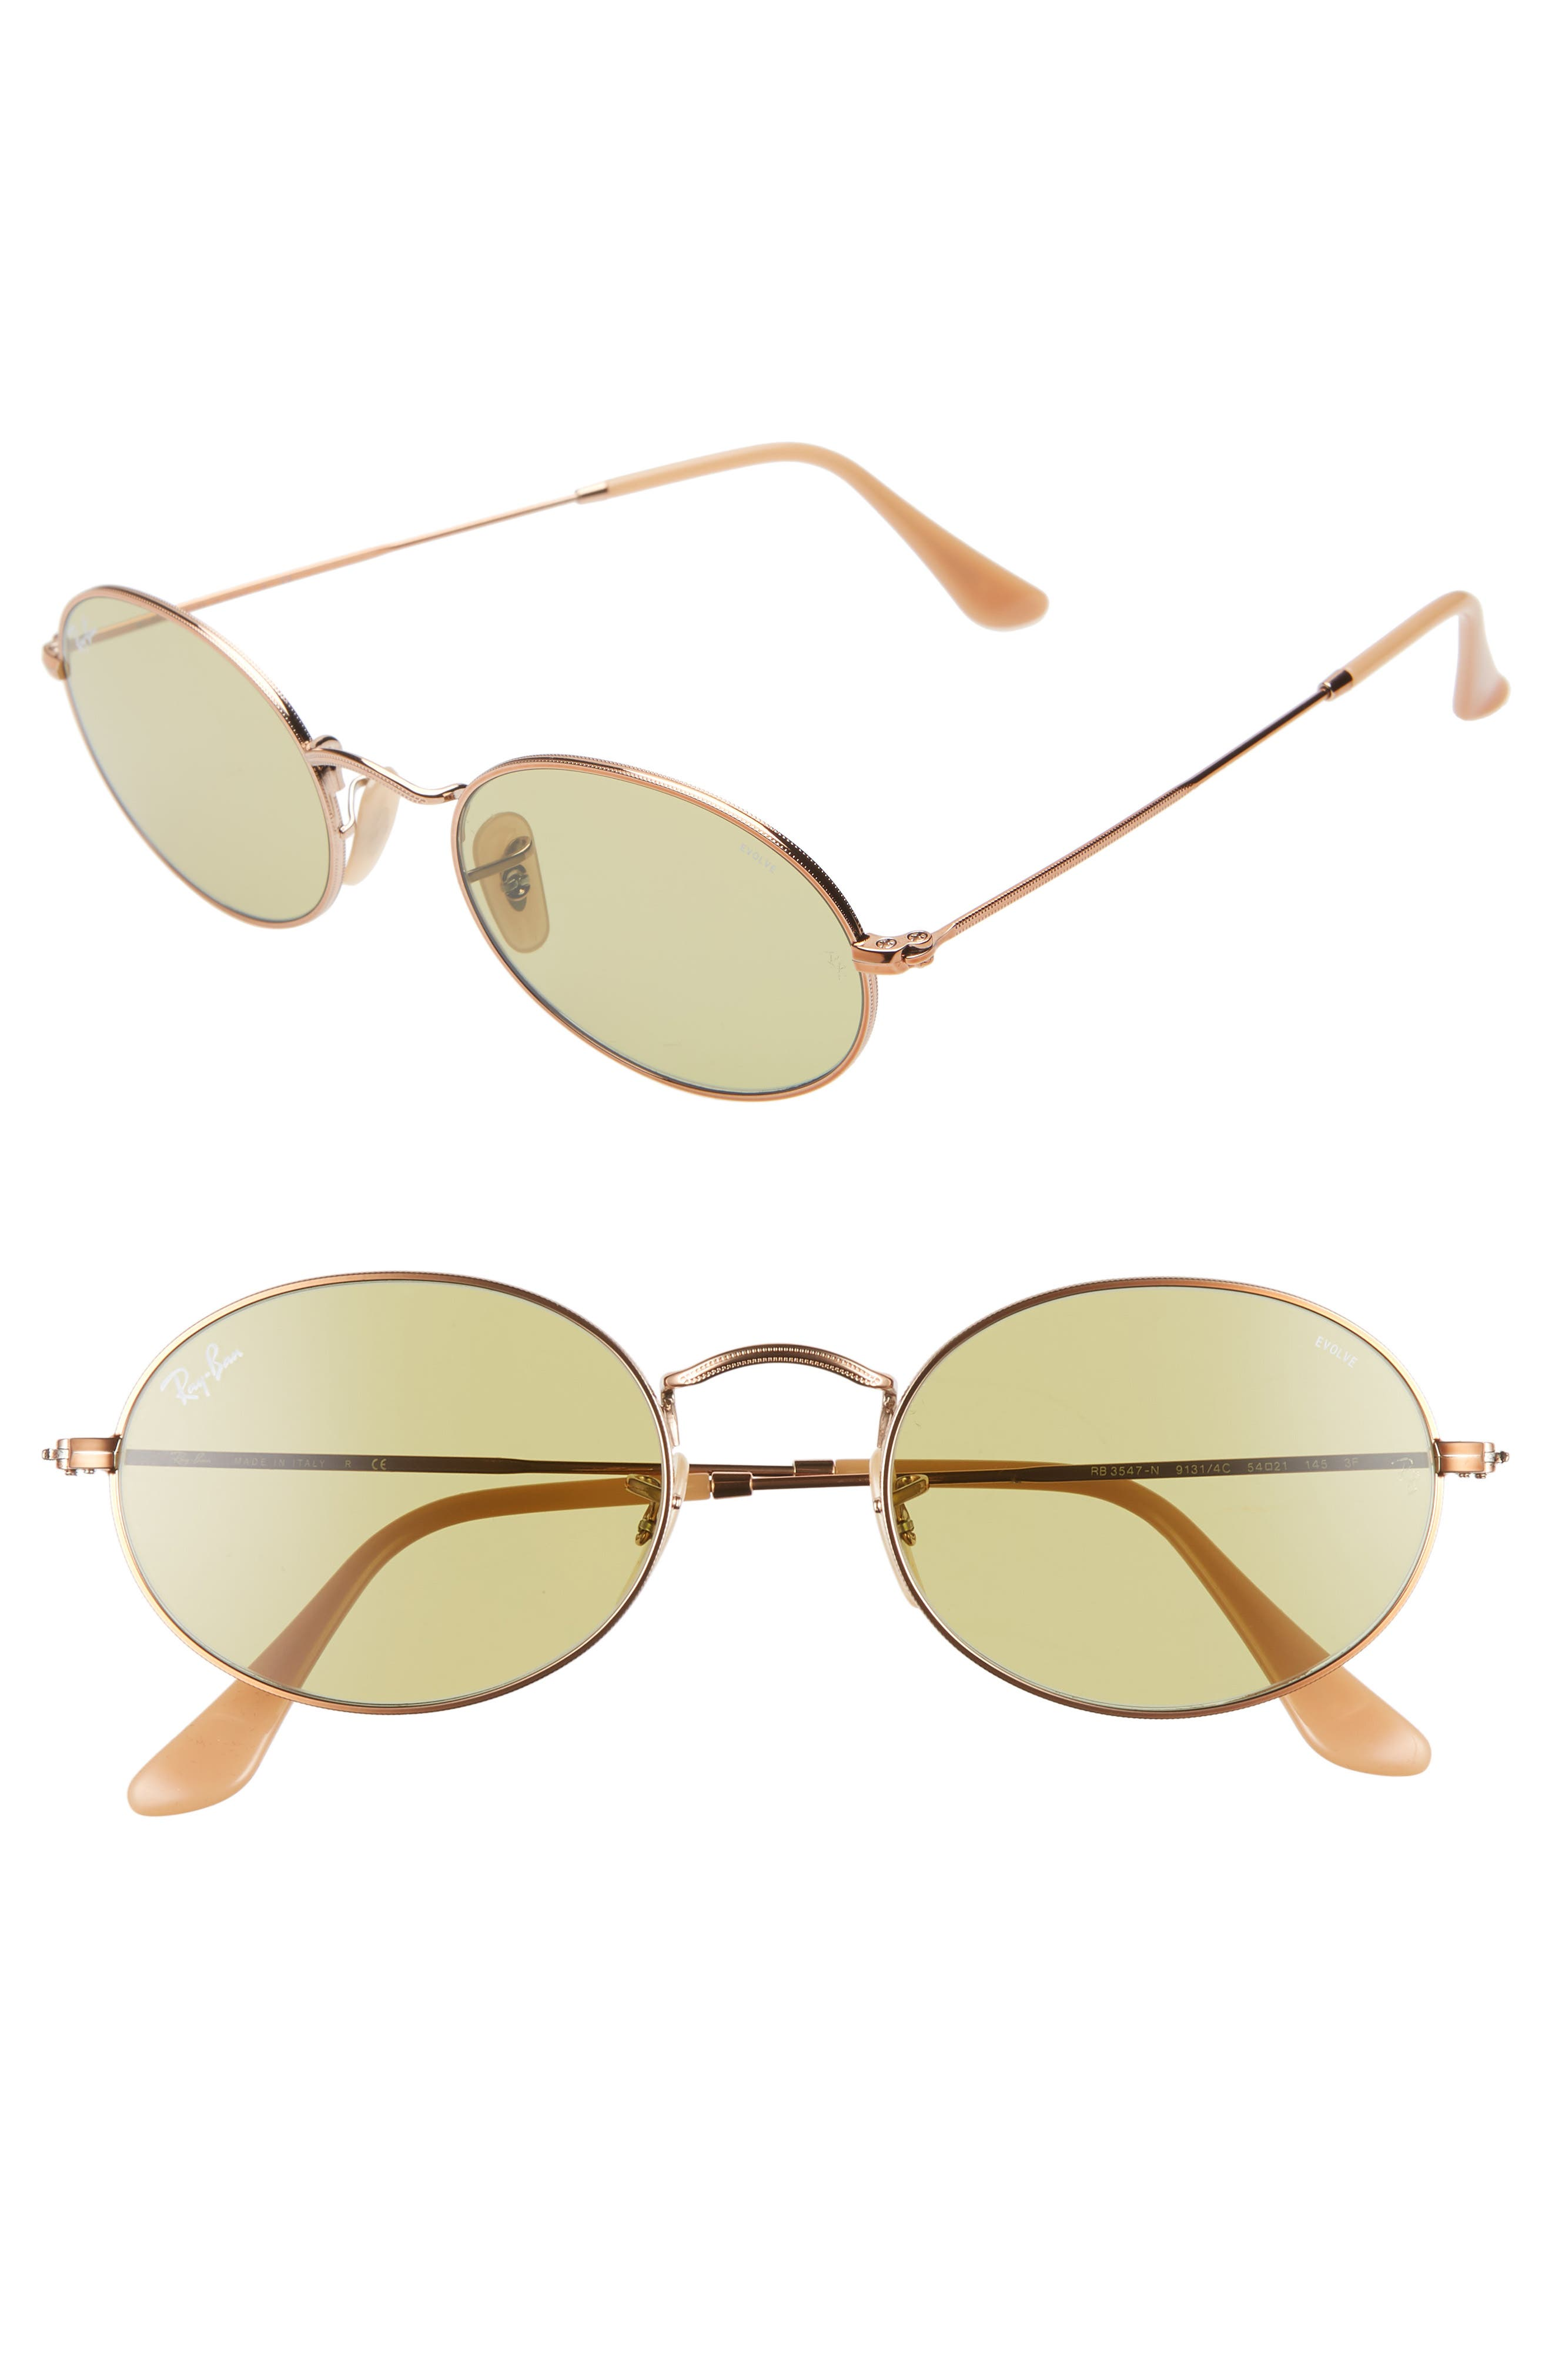 RAY-BAN, Evolve 54mm Polarized Oval Sunglasses, Main thumbnail 1, color, GOLD/ GREEN SOLID